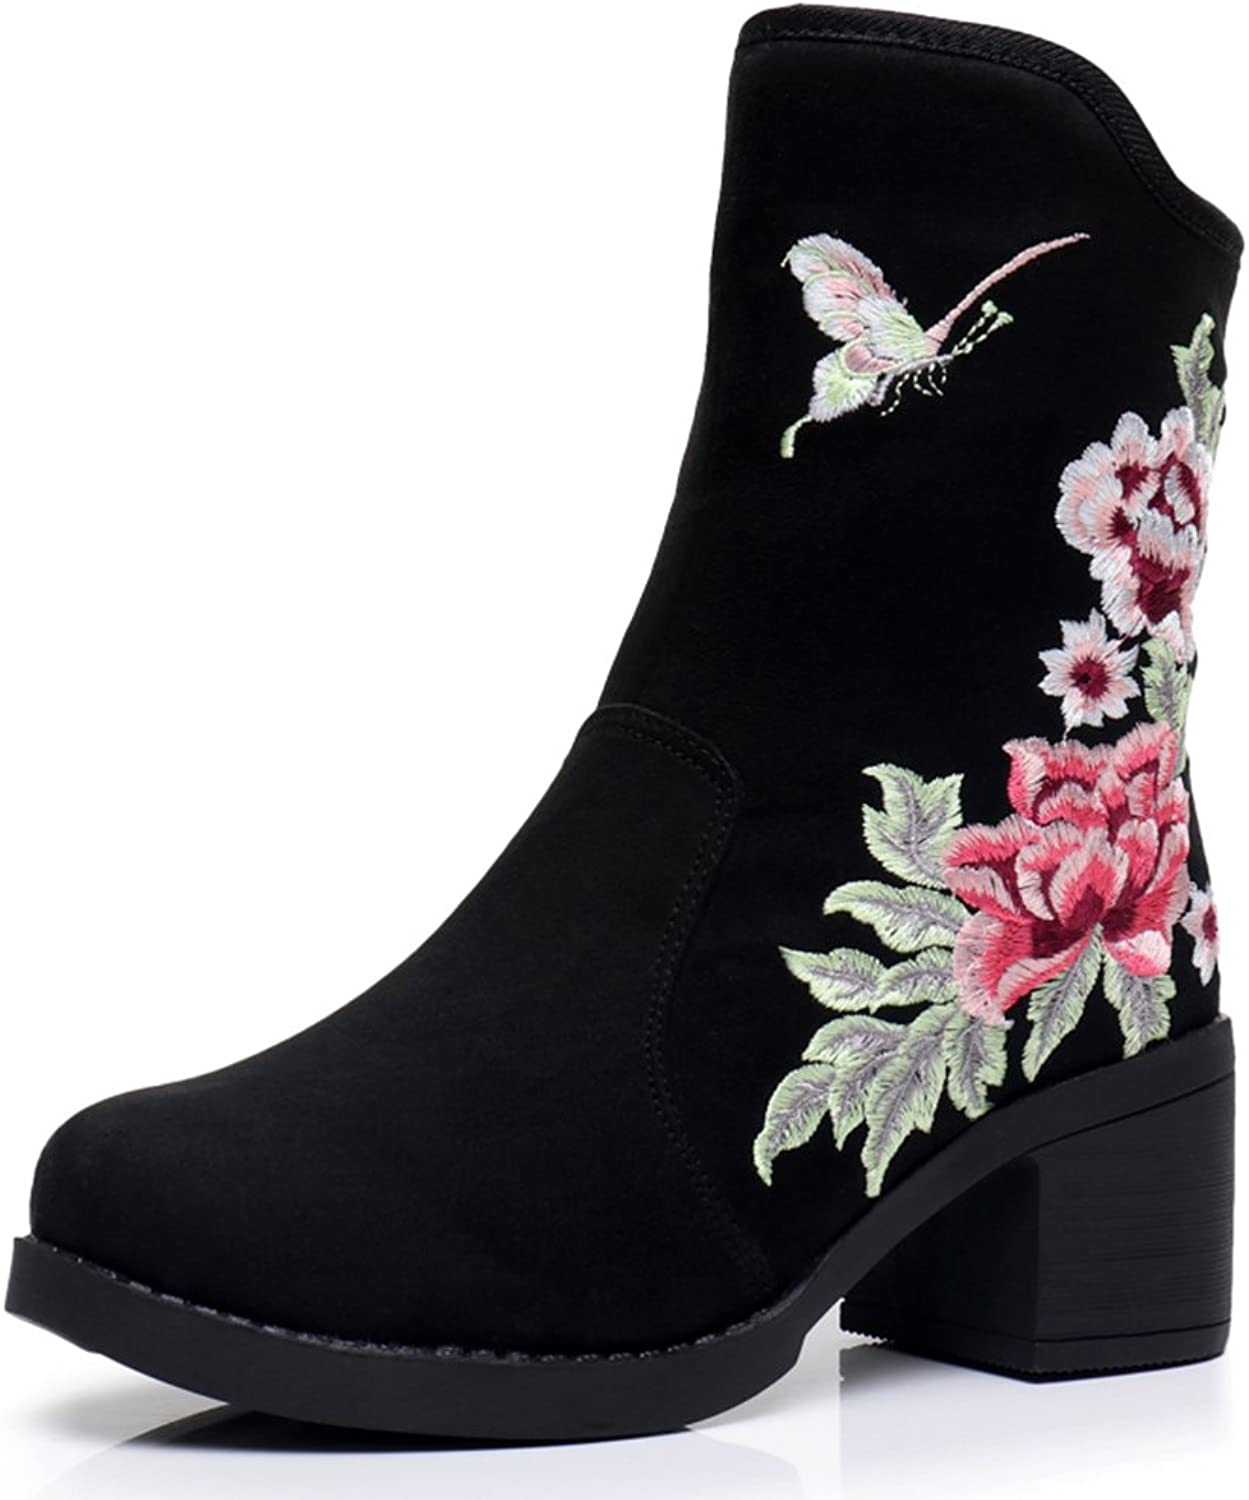 Veowalk Winter Women's Cotton Fabric Mid-Calf Boots Ladies Butterfly Embroidered Puppy Heel shoes